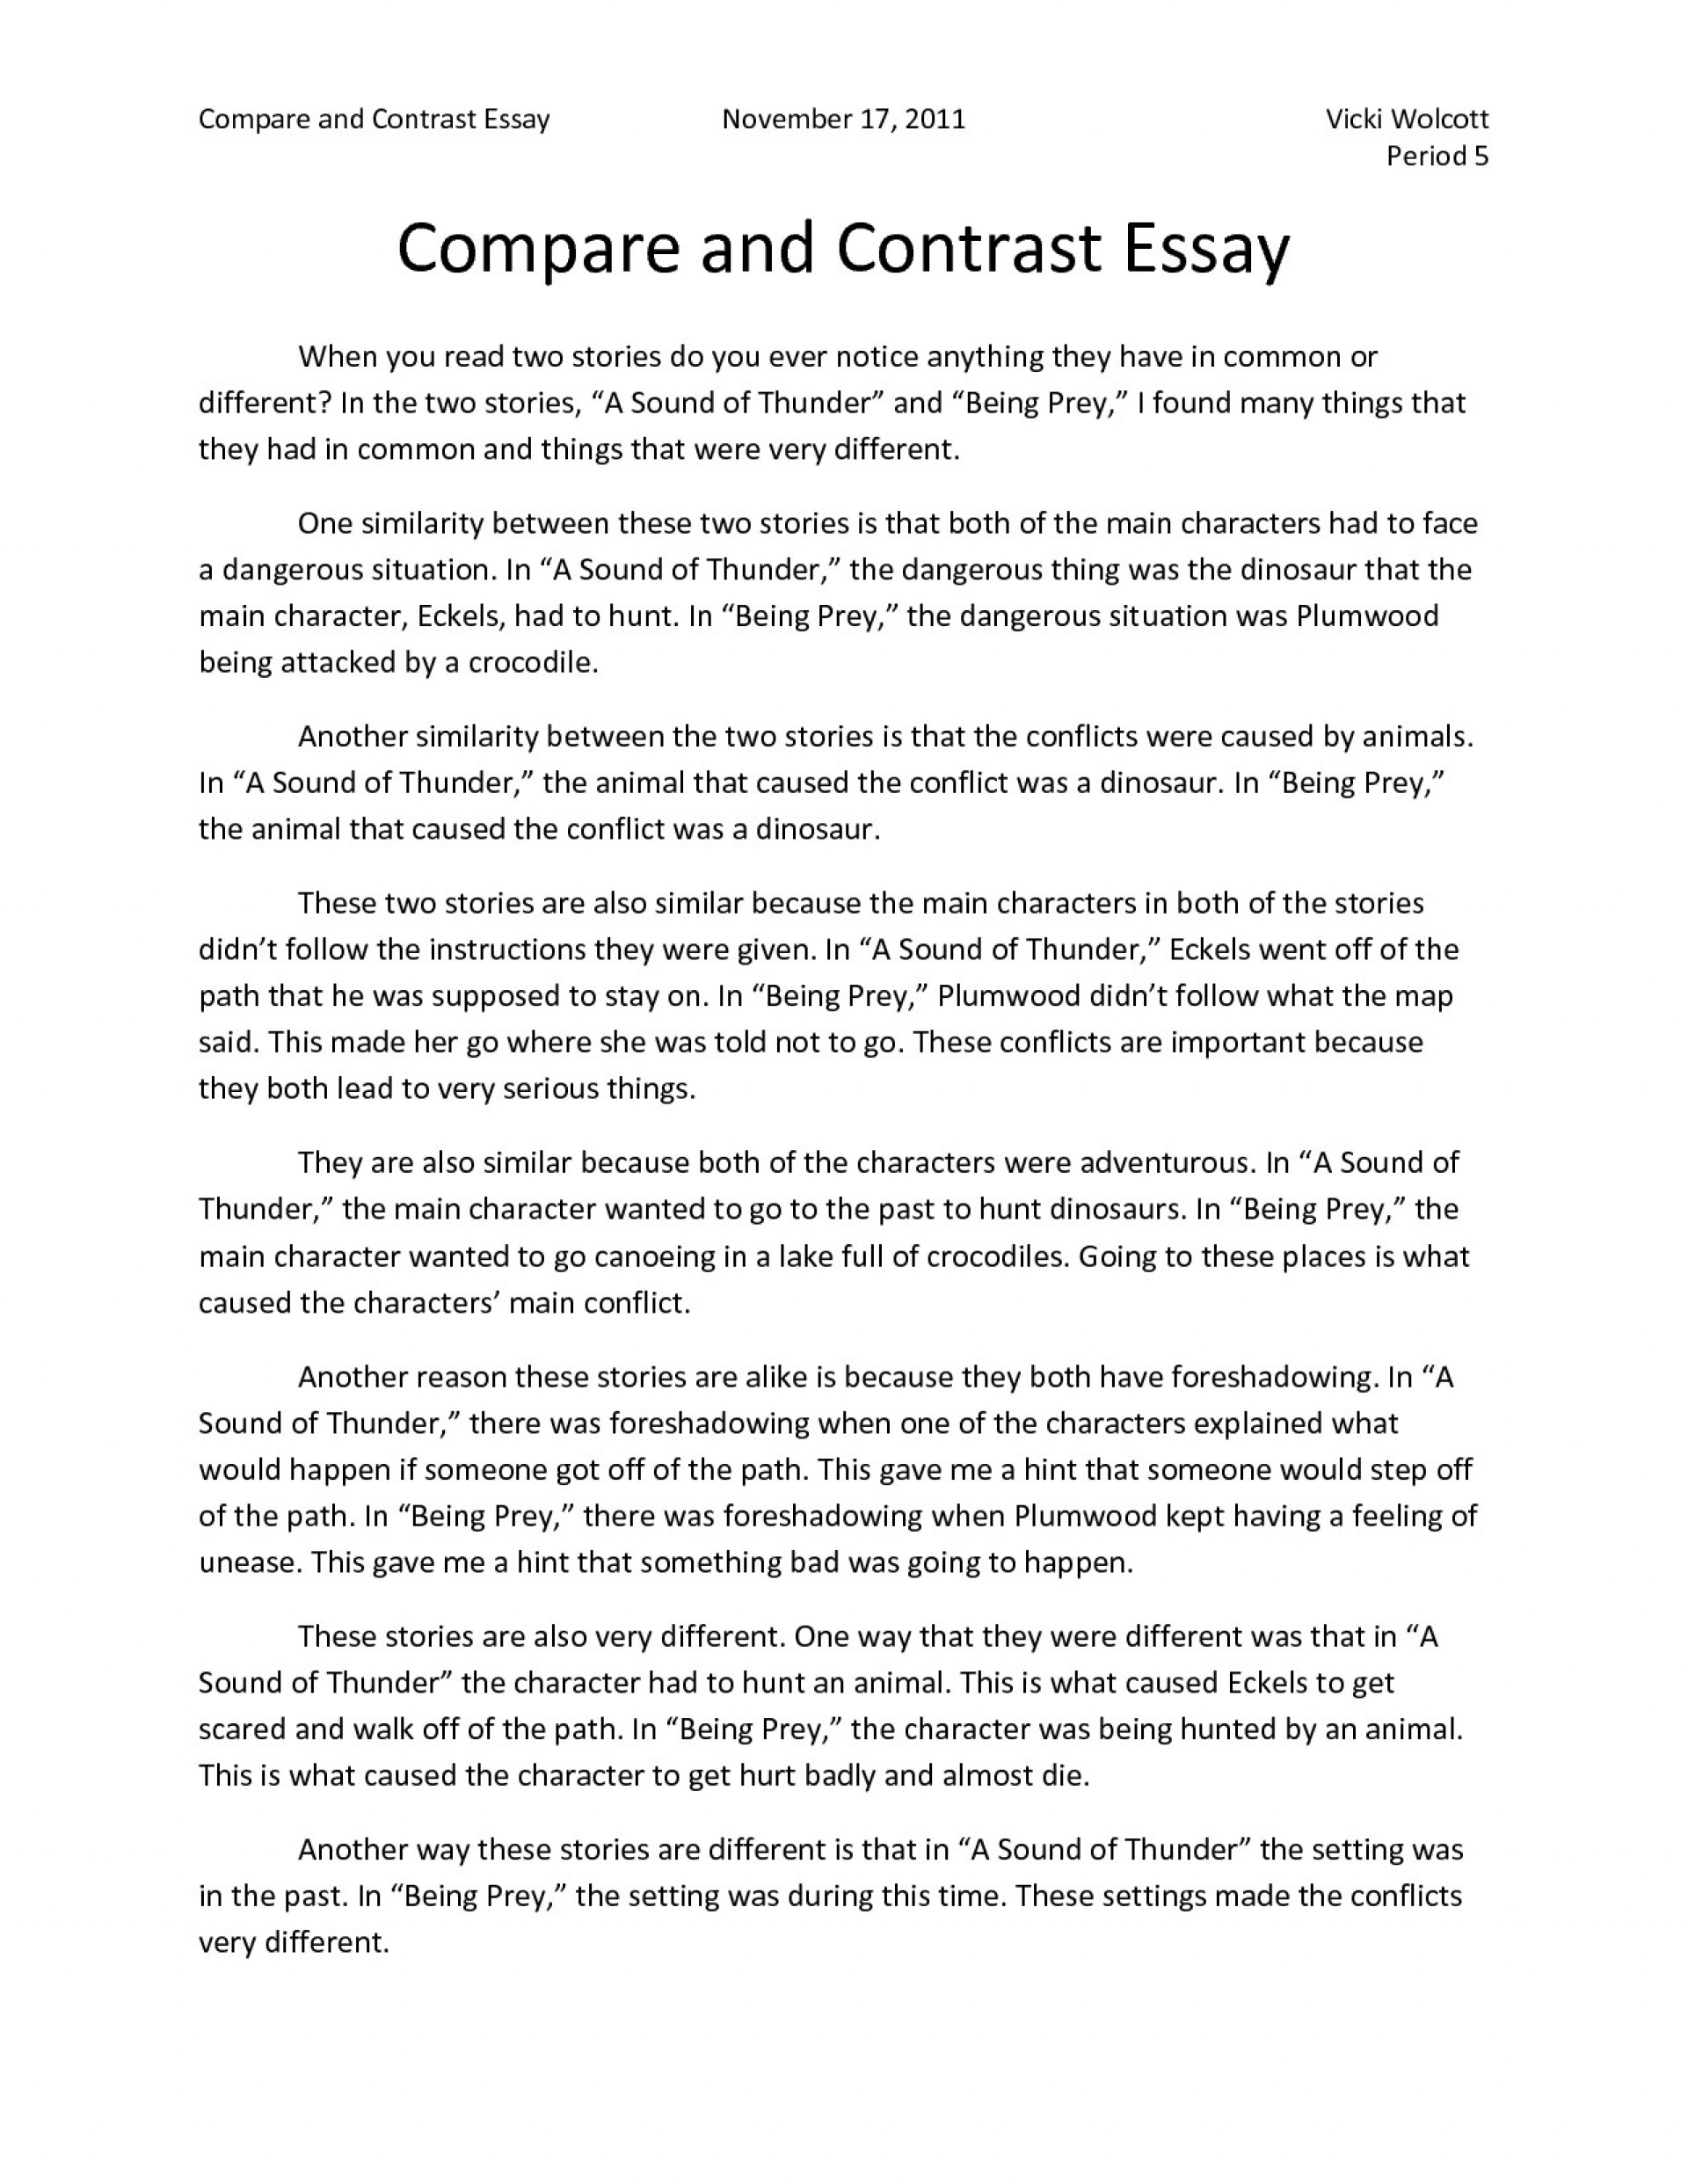 005 Essay Example An Of Compare And Contrast Comparison Ideas Awful Topics List Thesis Statement Means 1920